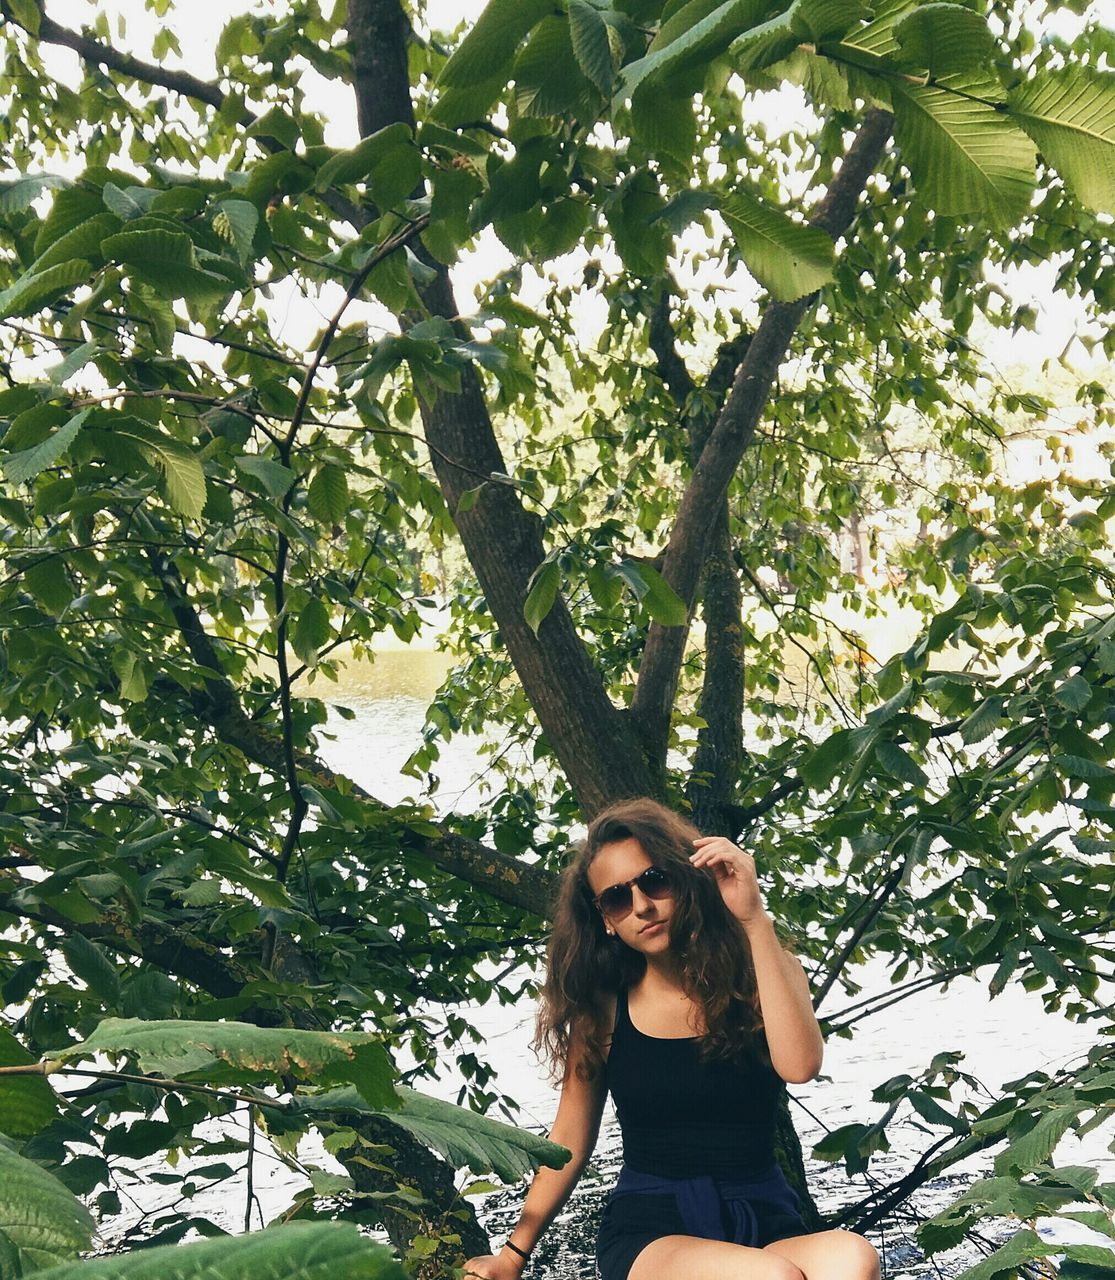 tree, young women, young adult, front view, real people, one person, lifestyles, smiling, casual clothing, looking at camera, leisure activity, standing, portrait, beautiful woman, day, long hair, outdoors, growth, nature, plant, leaf, happiness, branch, beauty in nature, people